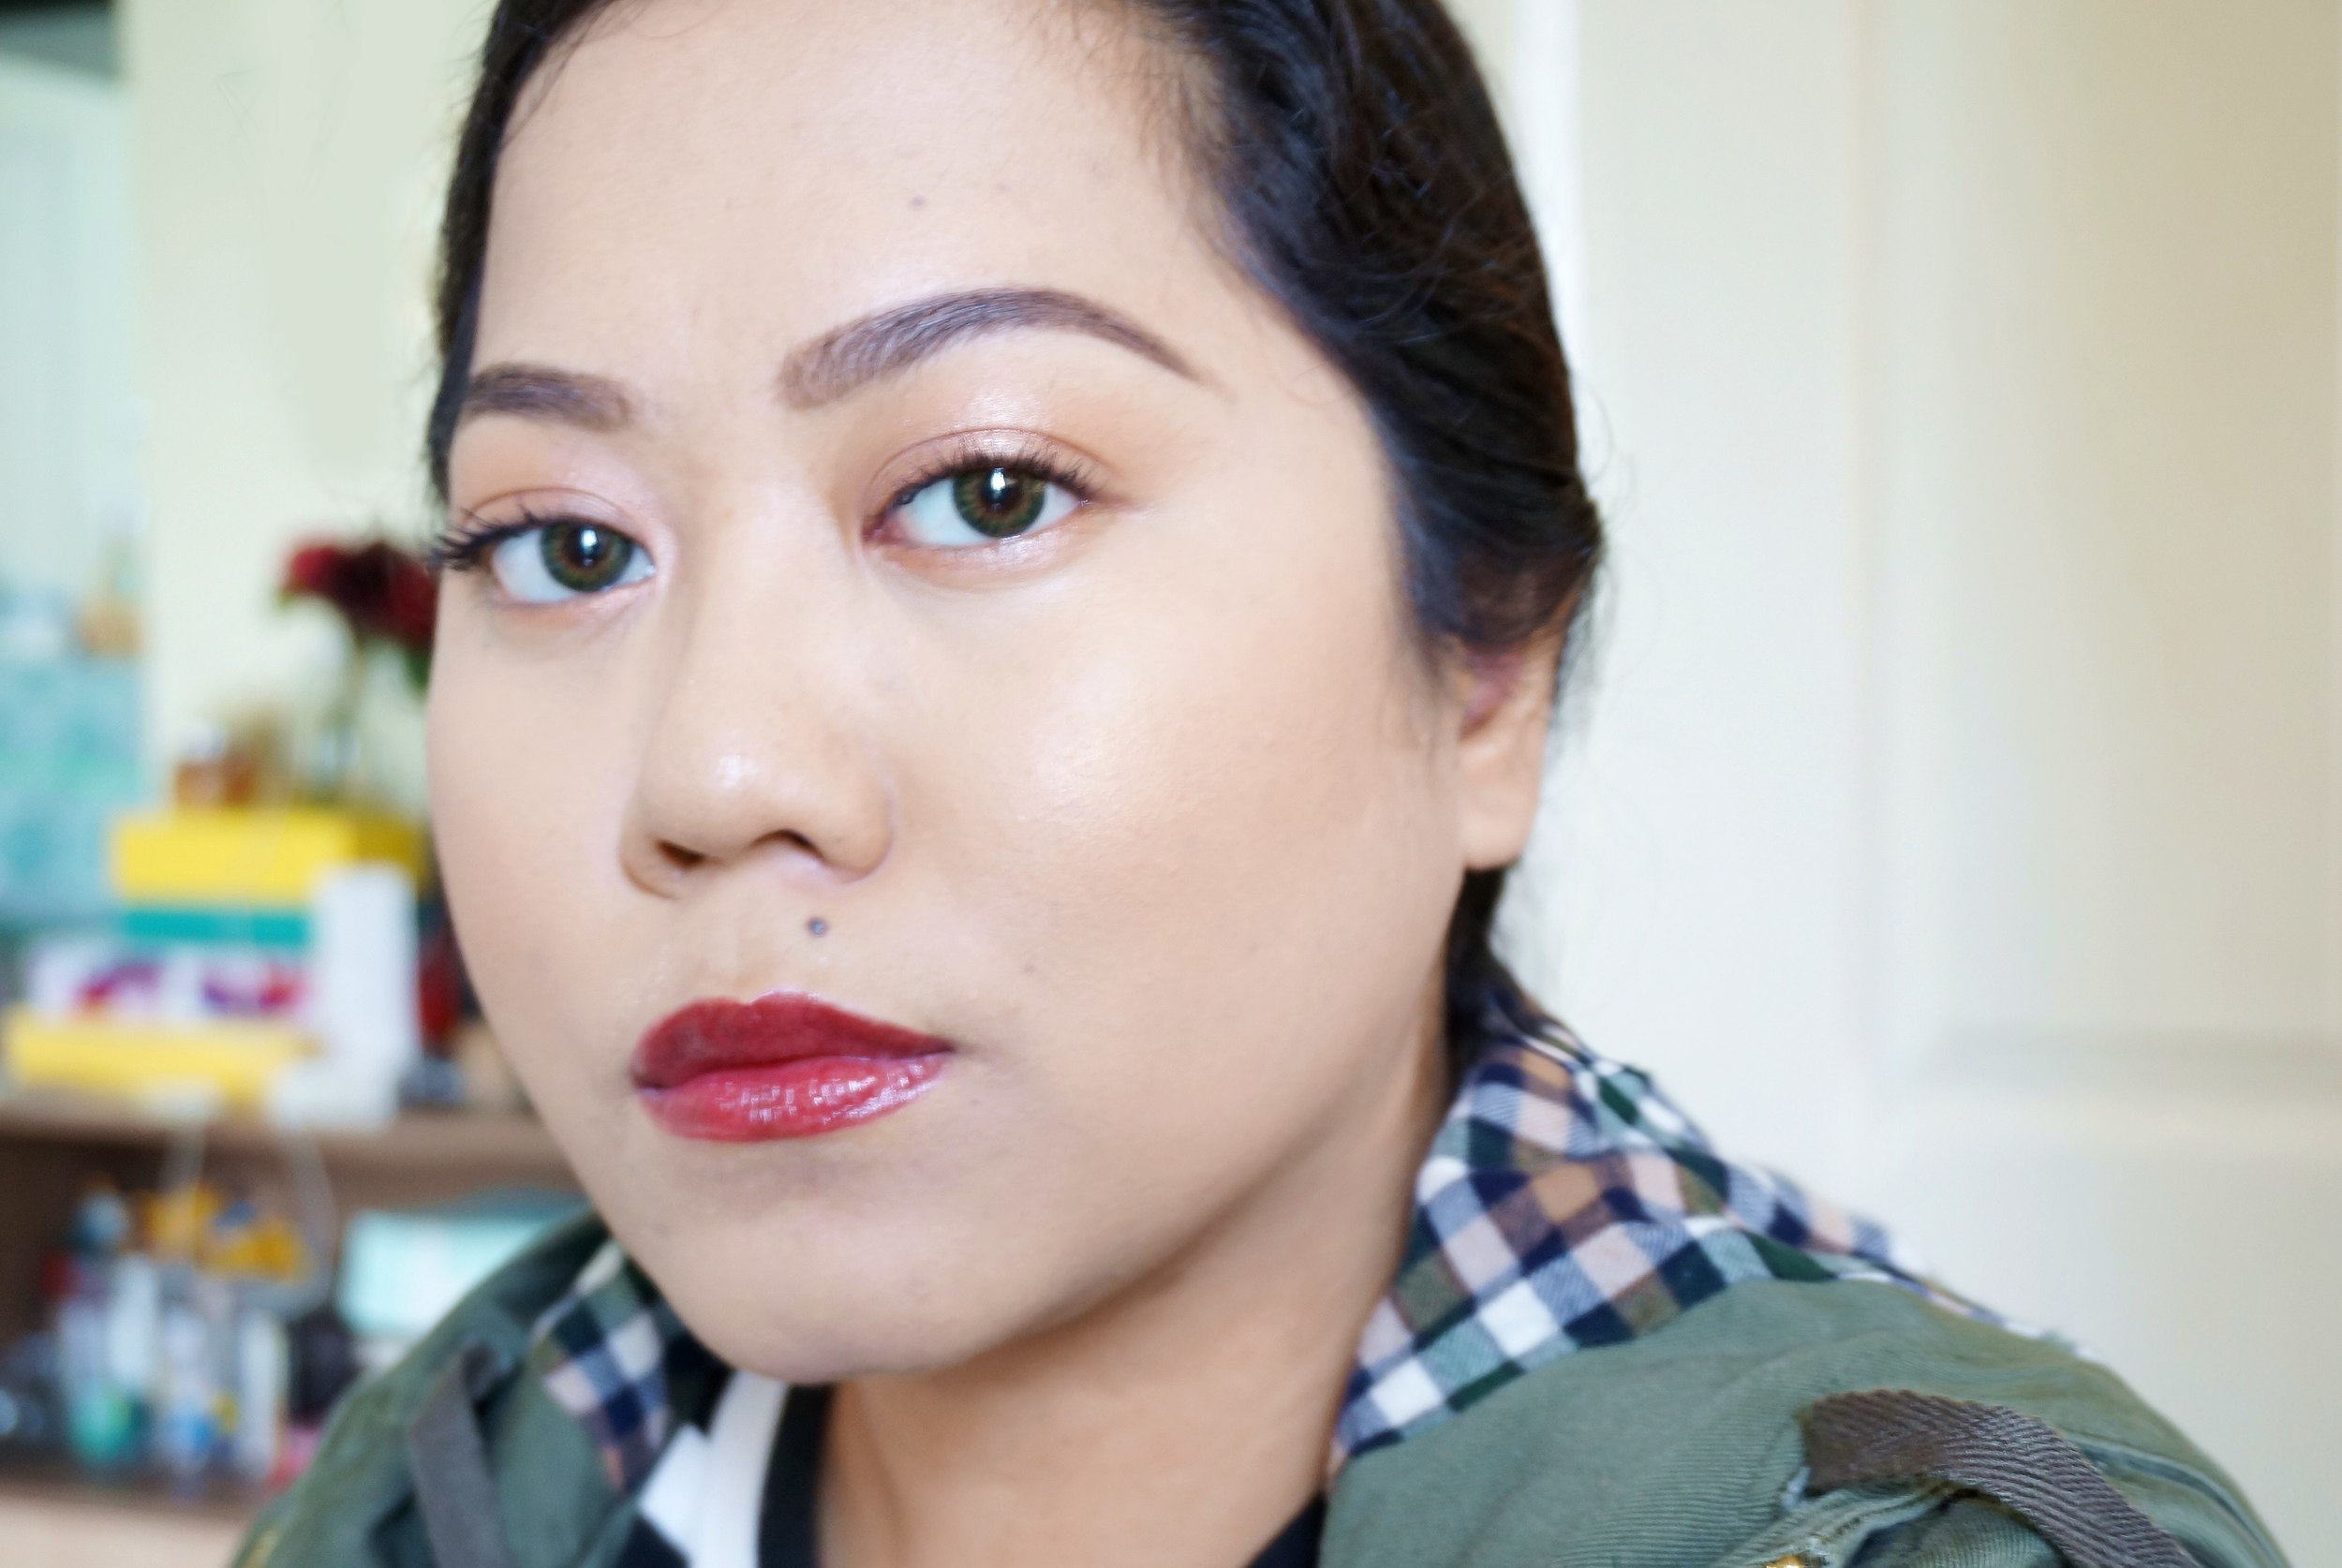 Here's a light way to wear dark lipstick: place a light pink shadow all over your lids, load on the lashes, and highlight your cheekbones. Looks fresh right? Try it one time. ;)